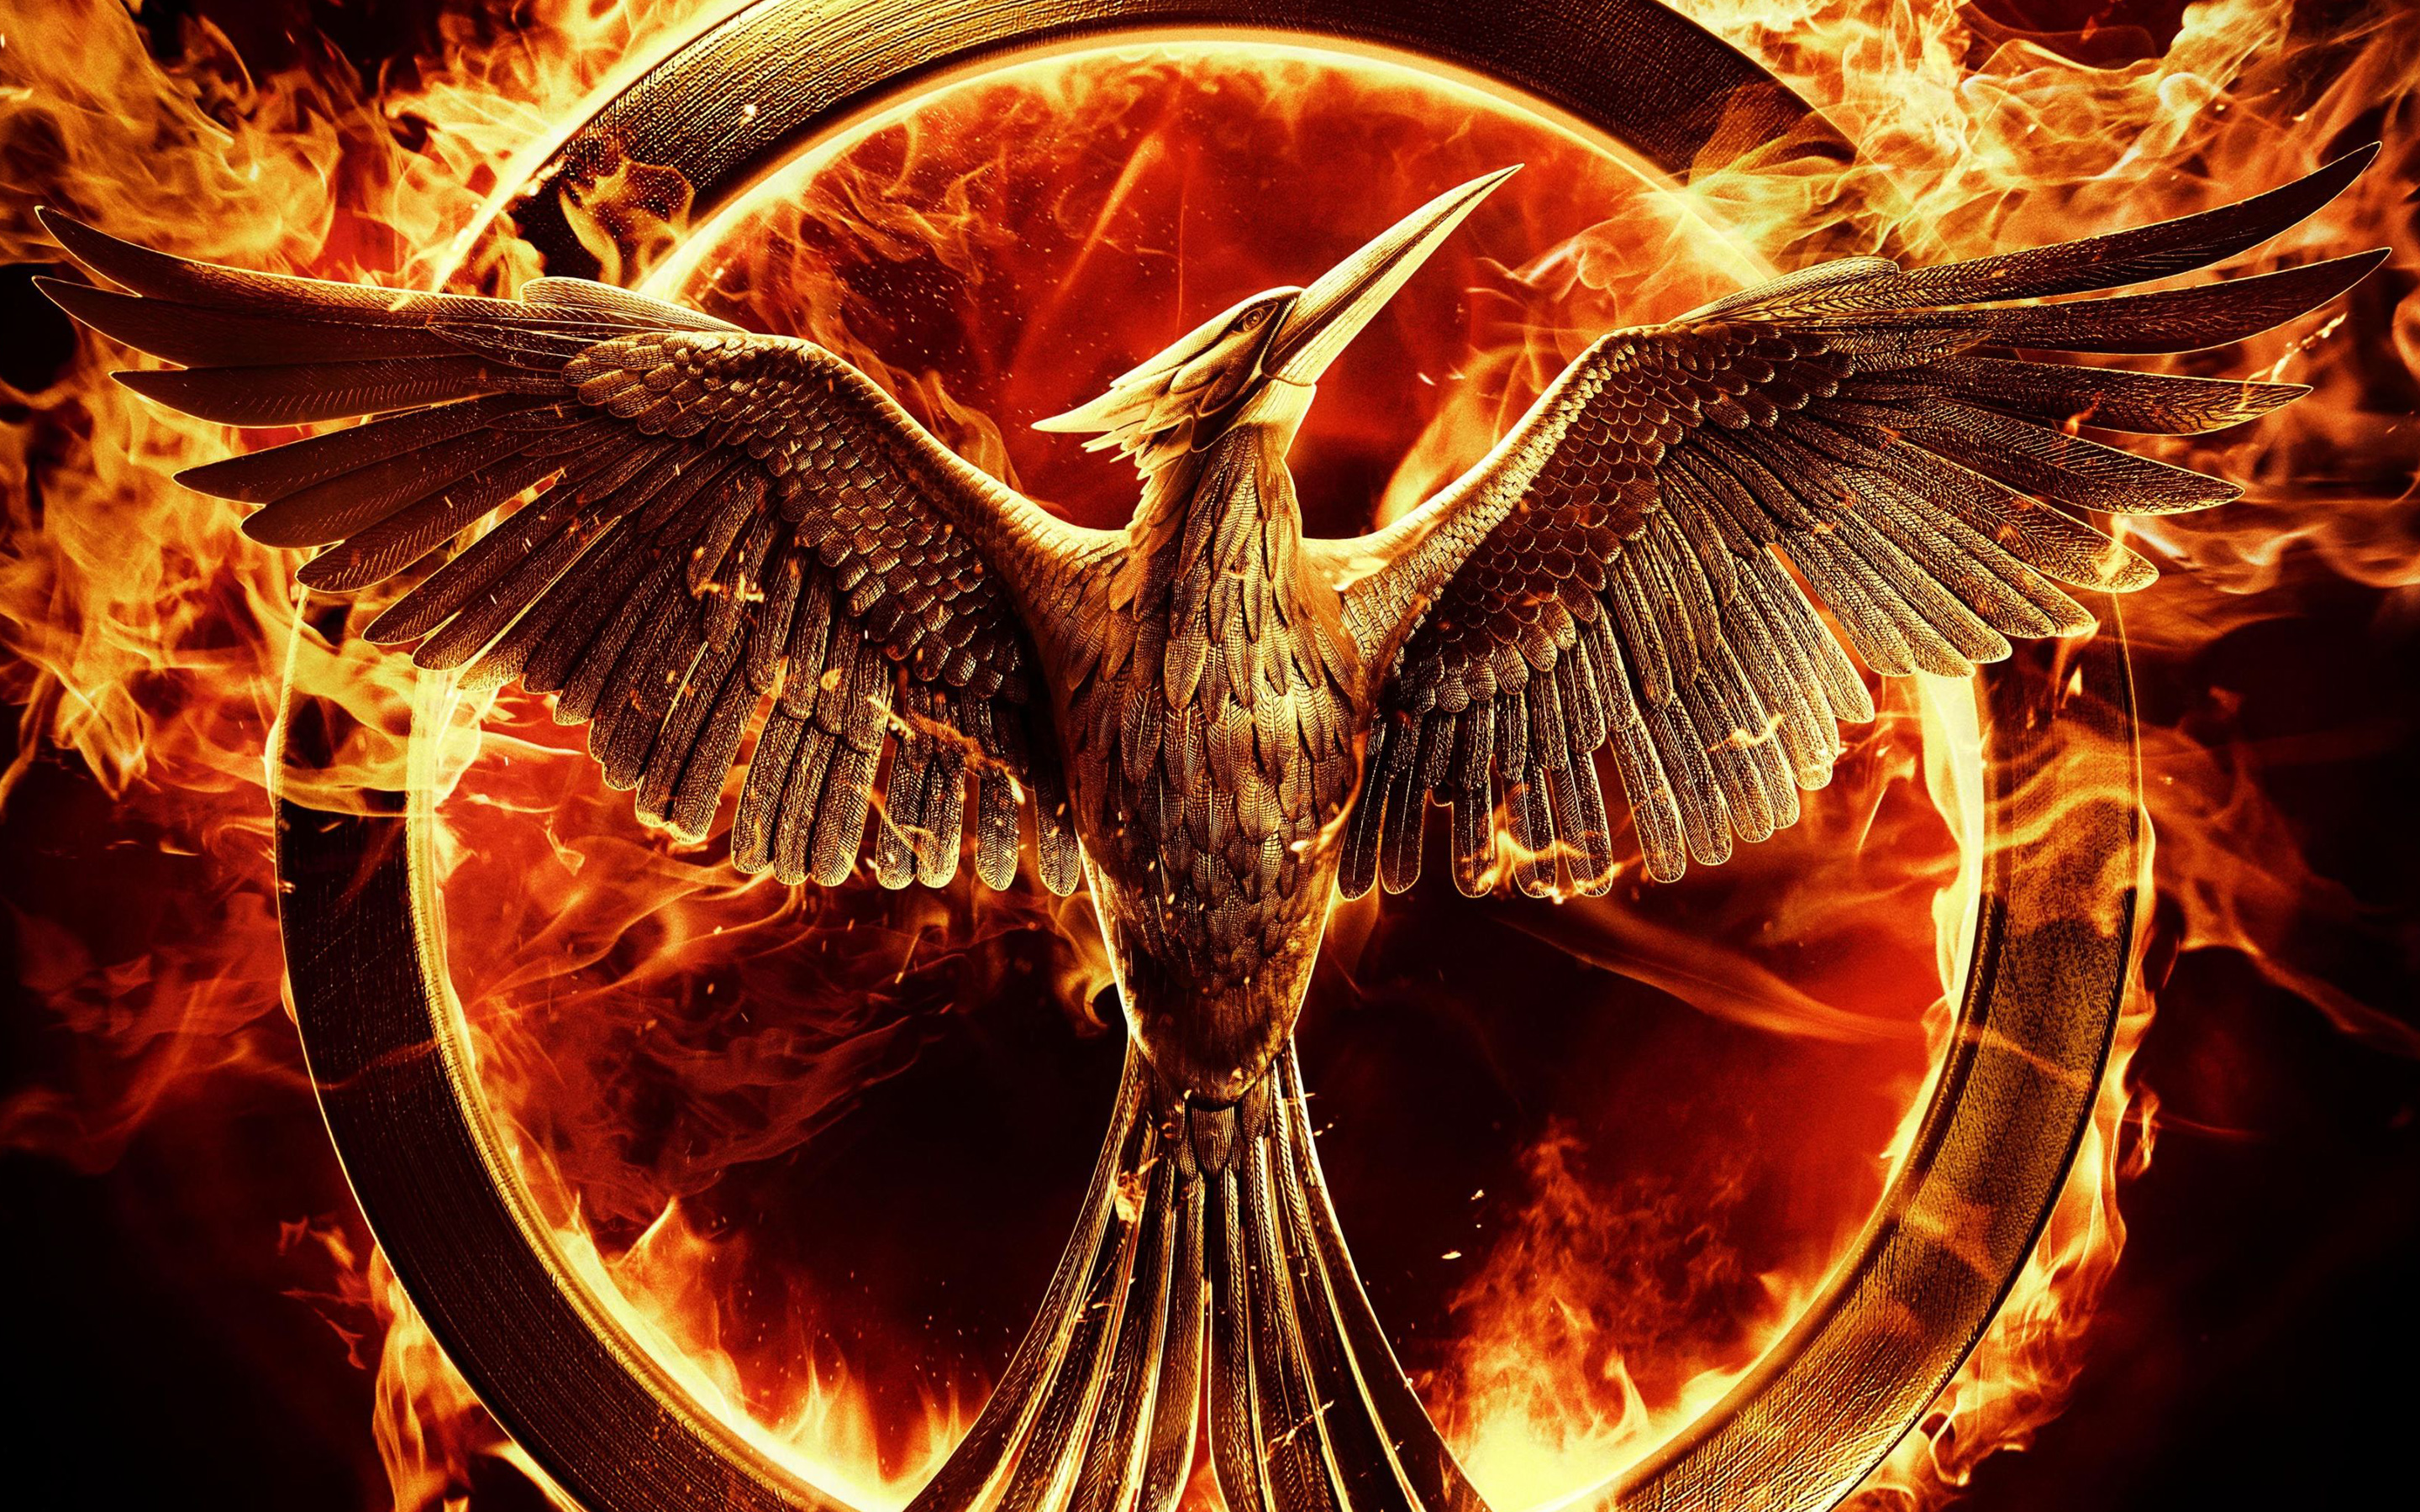 HD Wallpapers The Hunger Games Mockingjay